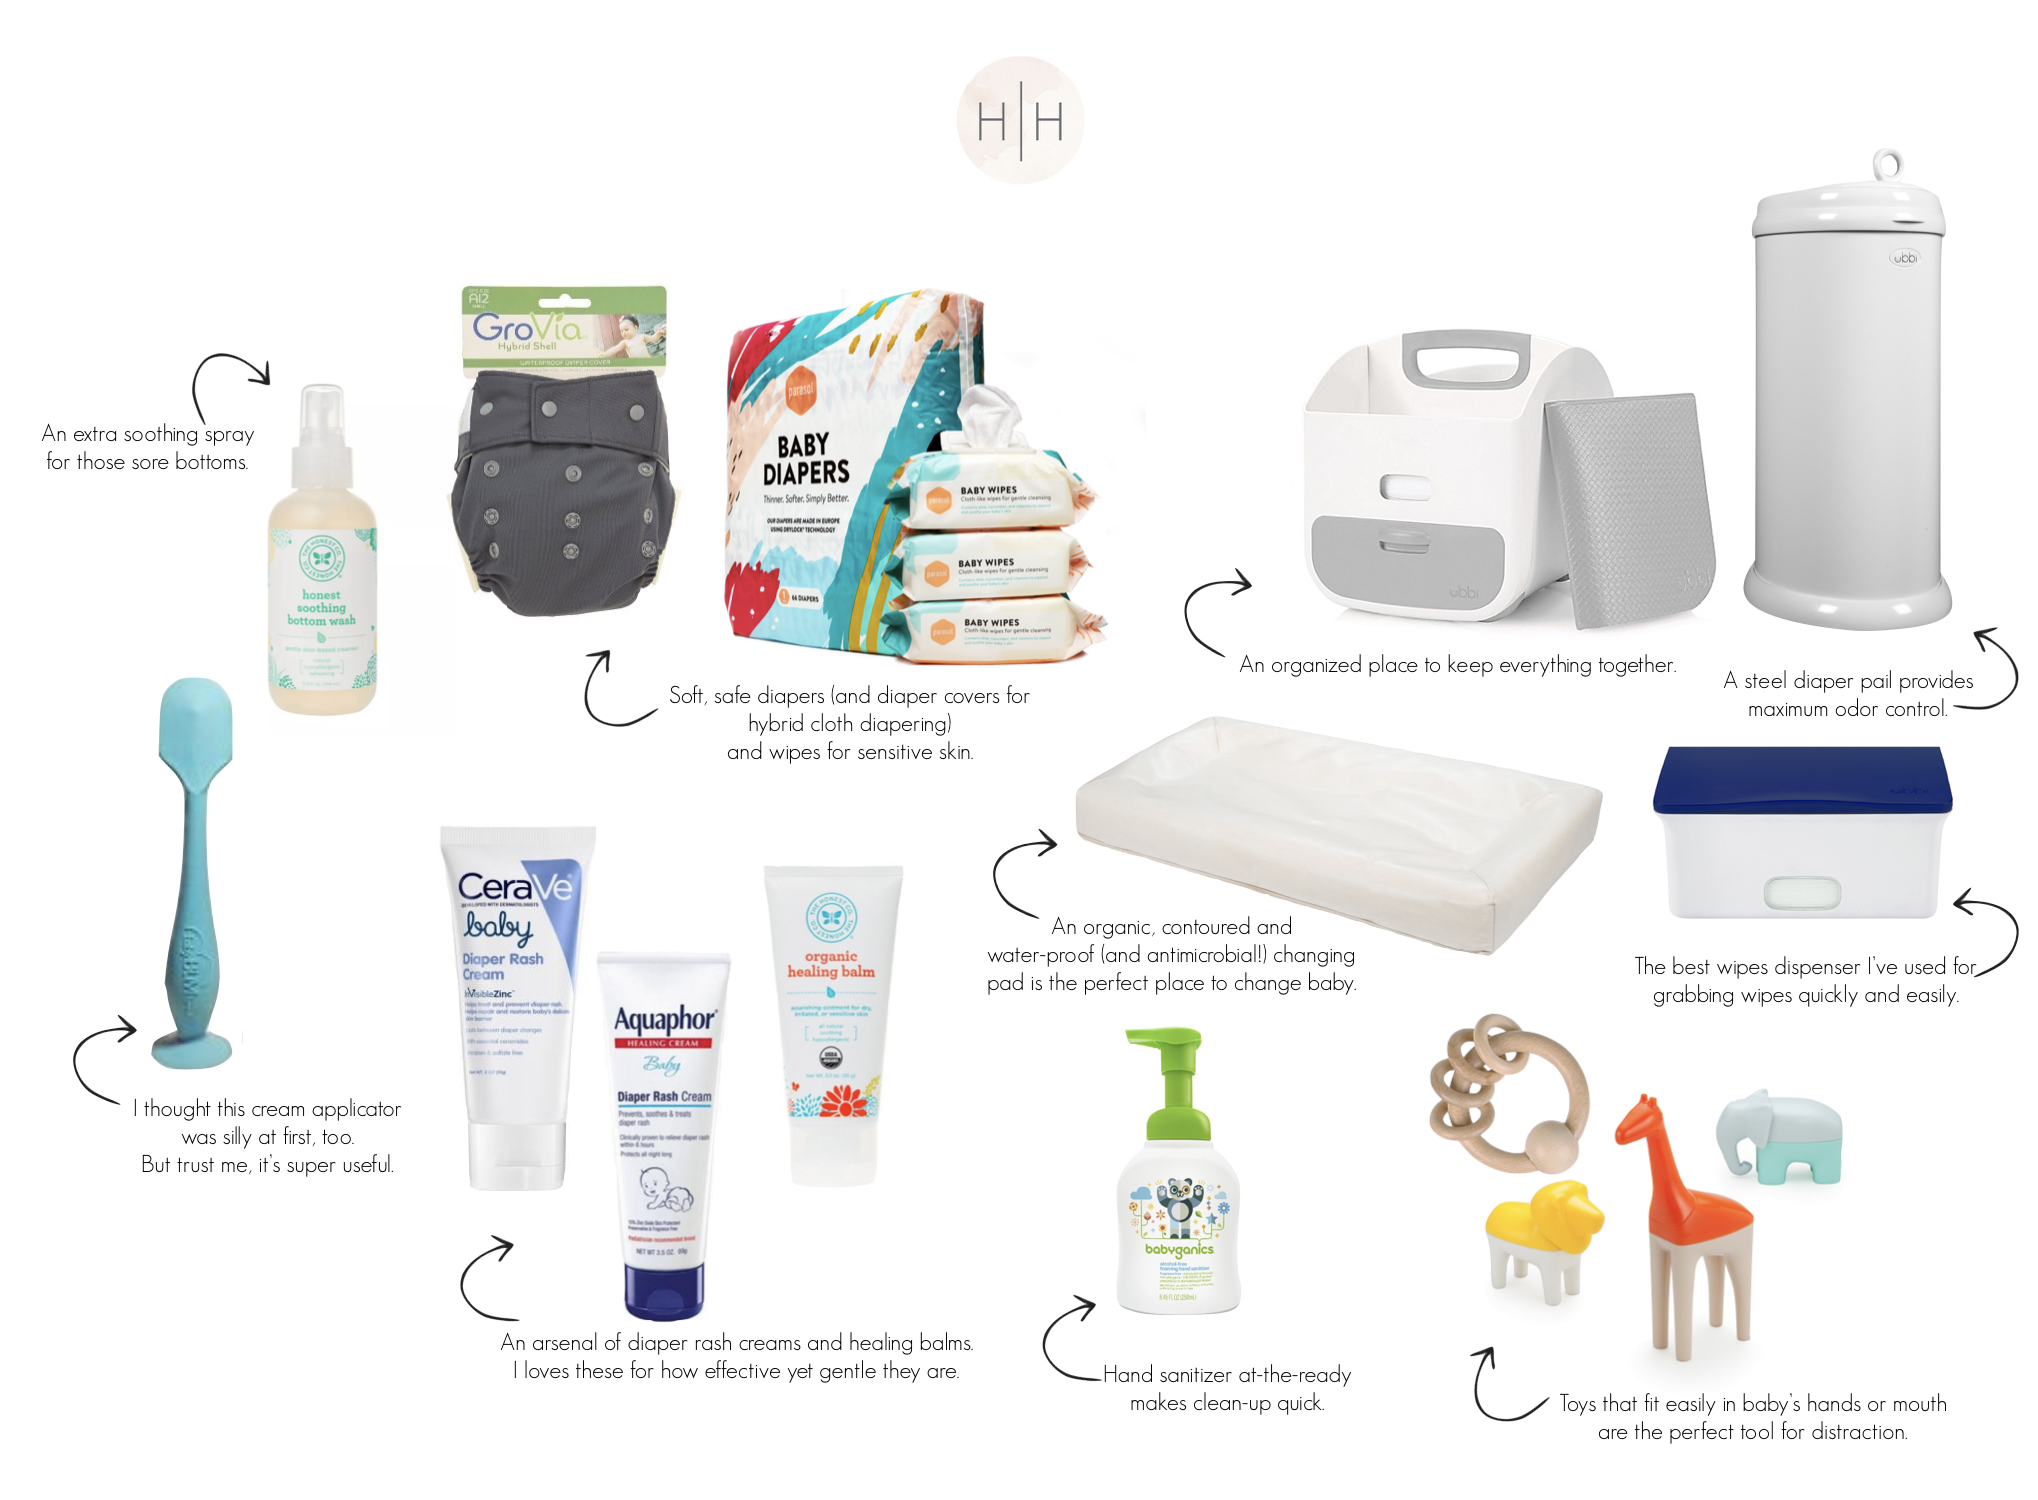 From top left: Honest soothing bottom spray, GroVia hybrid cloth diaper, Parasol diapers and wipes, Ubbi diaper caddy, Ubbi diaper pail, Ubbi wipes dispenser, BabyBum cream applicator, CeraVe diaper rash cream, Aquaphor diaper rash cream. Honest organic healing balm, Giggle organic contoured changing pad, Babyganics hand sanitizer, Heimess rattle, Kid O animals